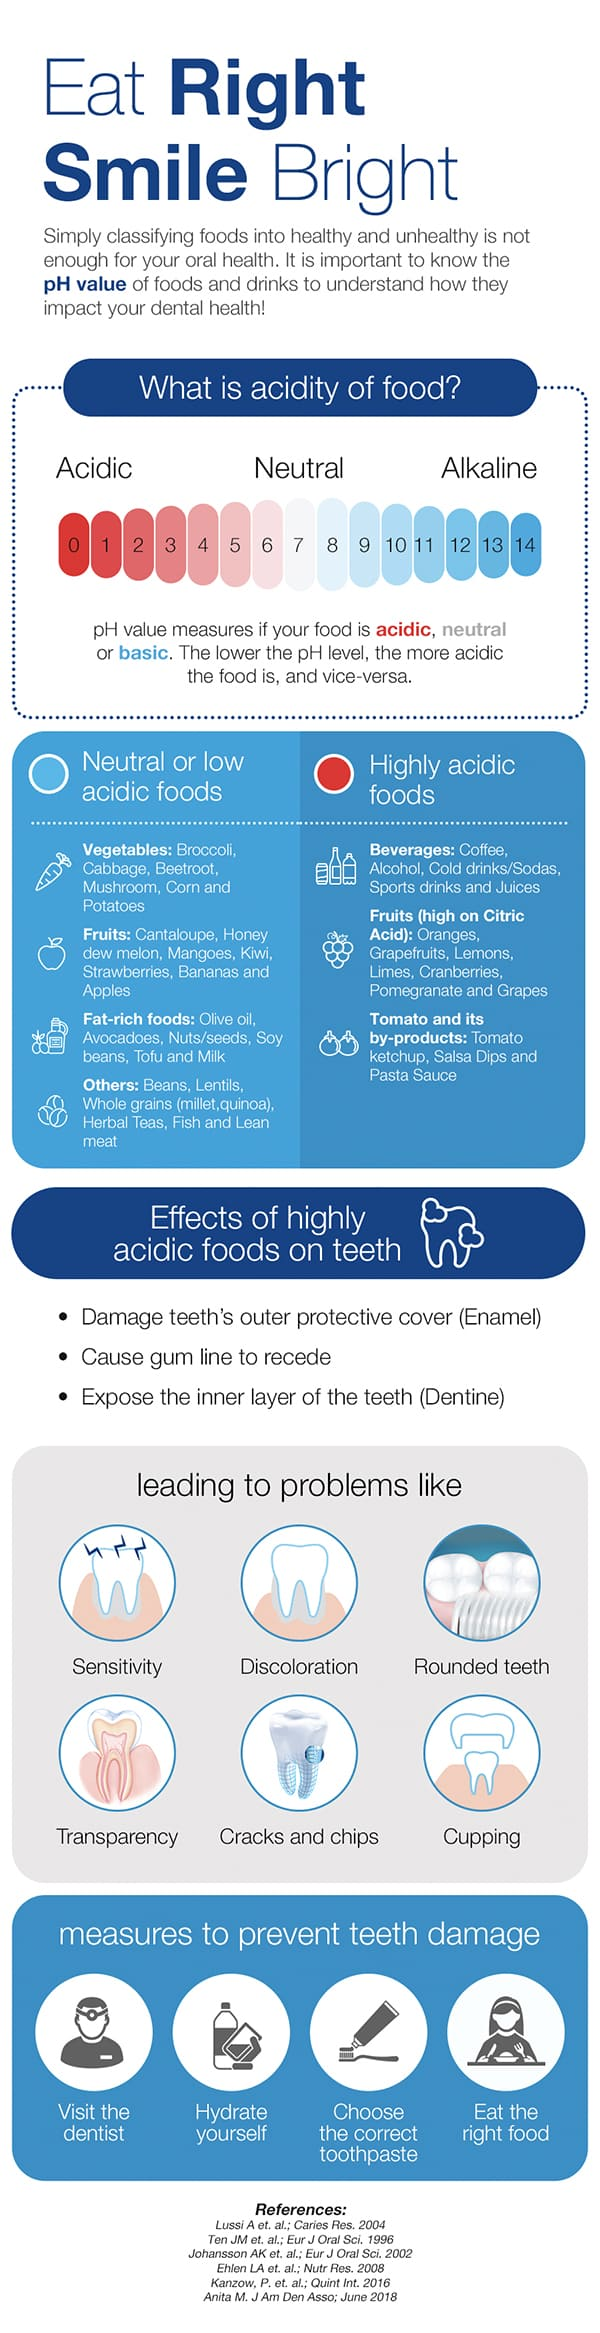 Eat Right To Keep Your Teeth Strong And Healthy